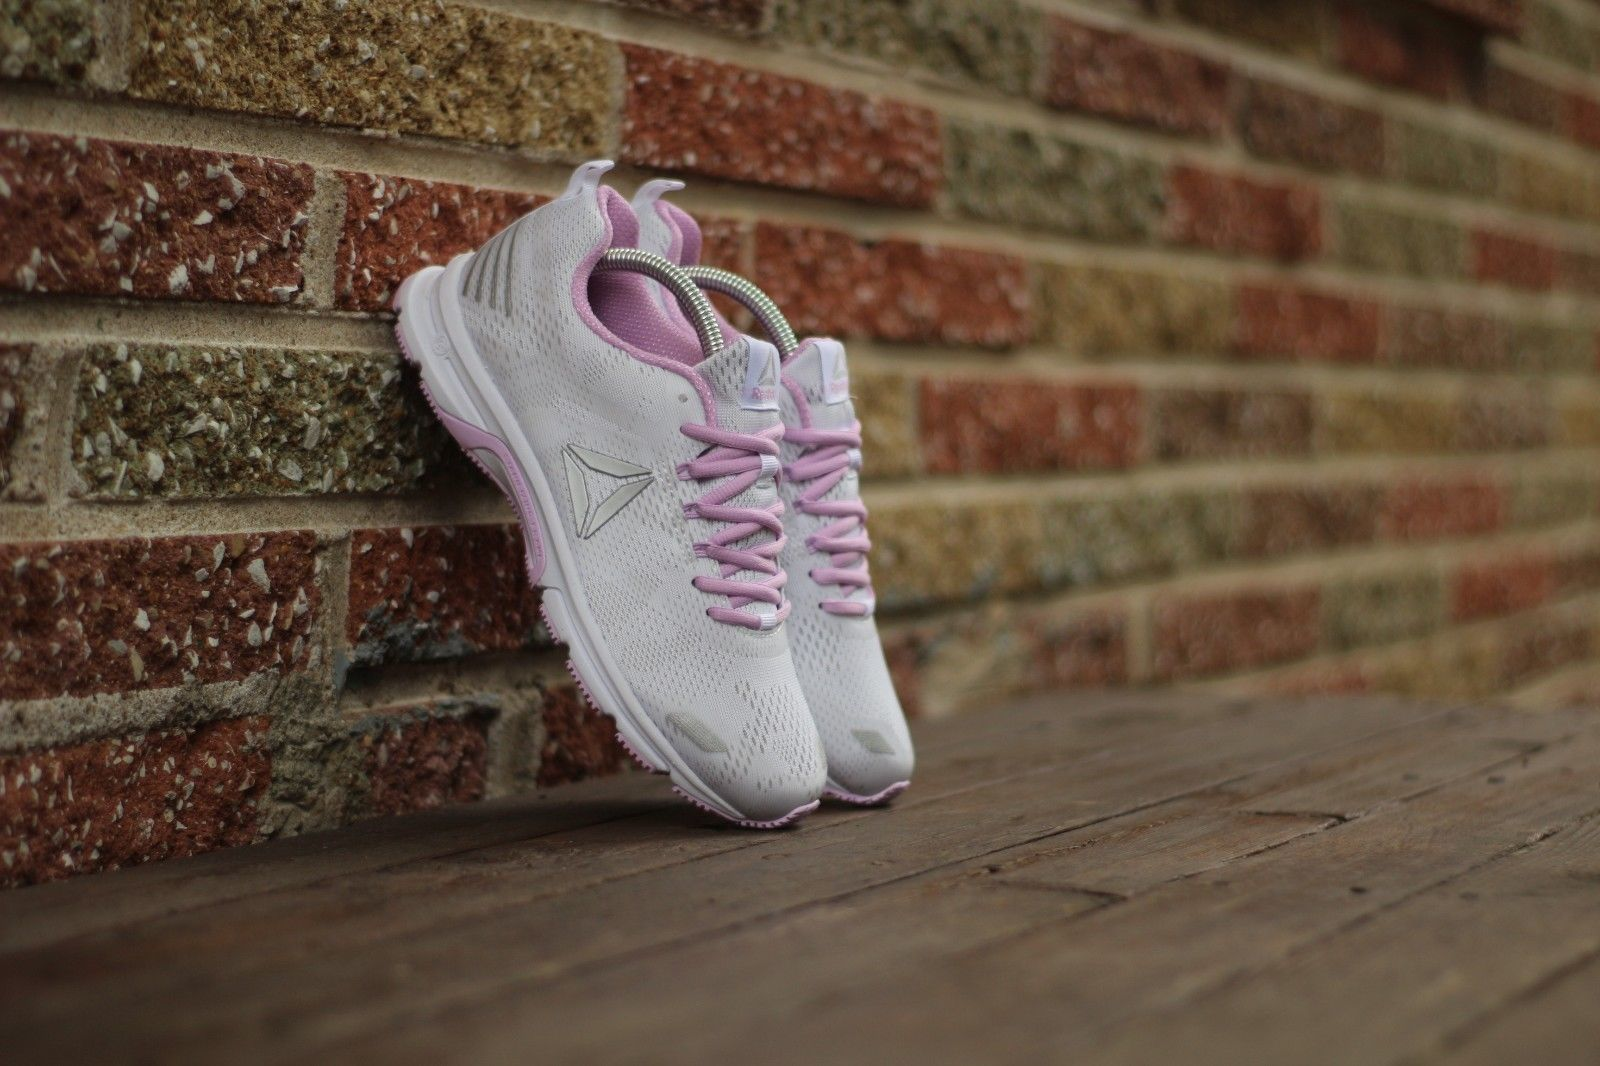 77038814da54 Reebok Women s Size 9 Ahary Runner Shoes and 50 similar items. 57